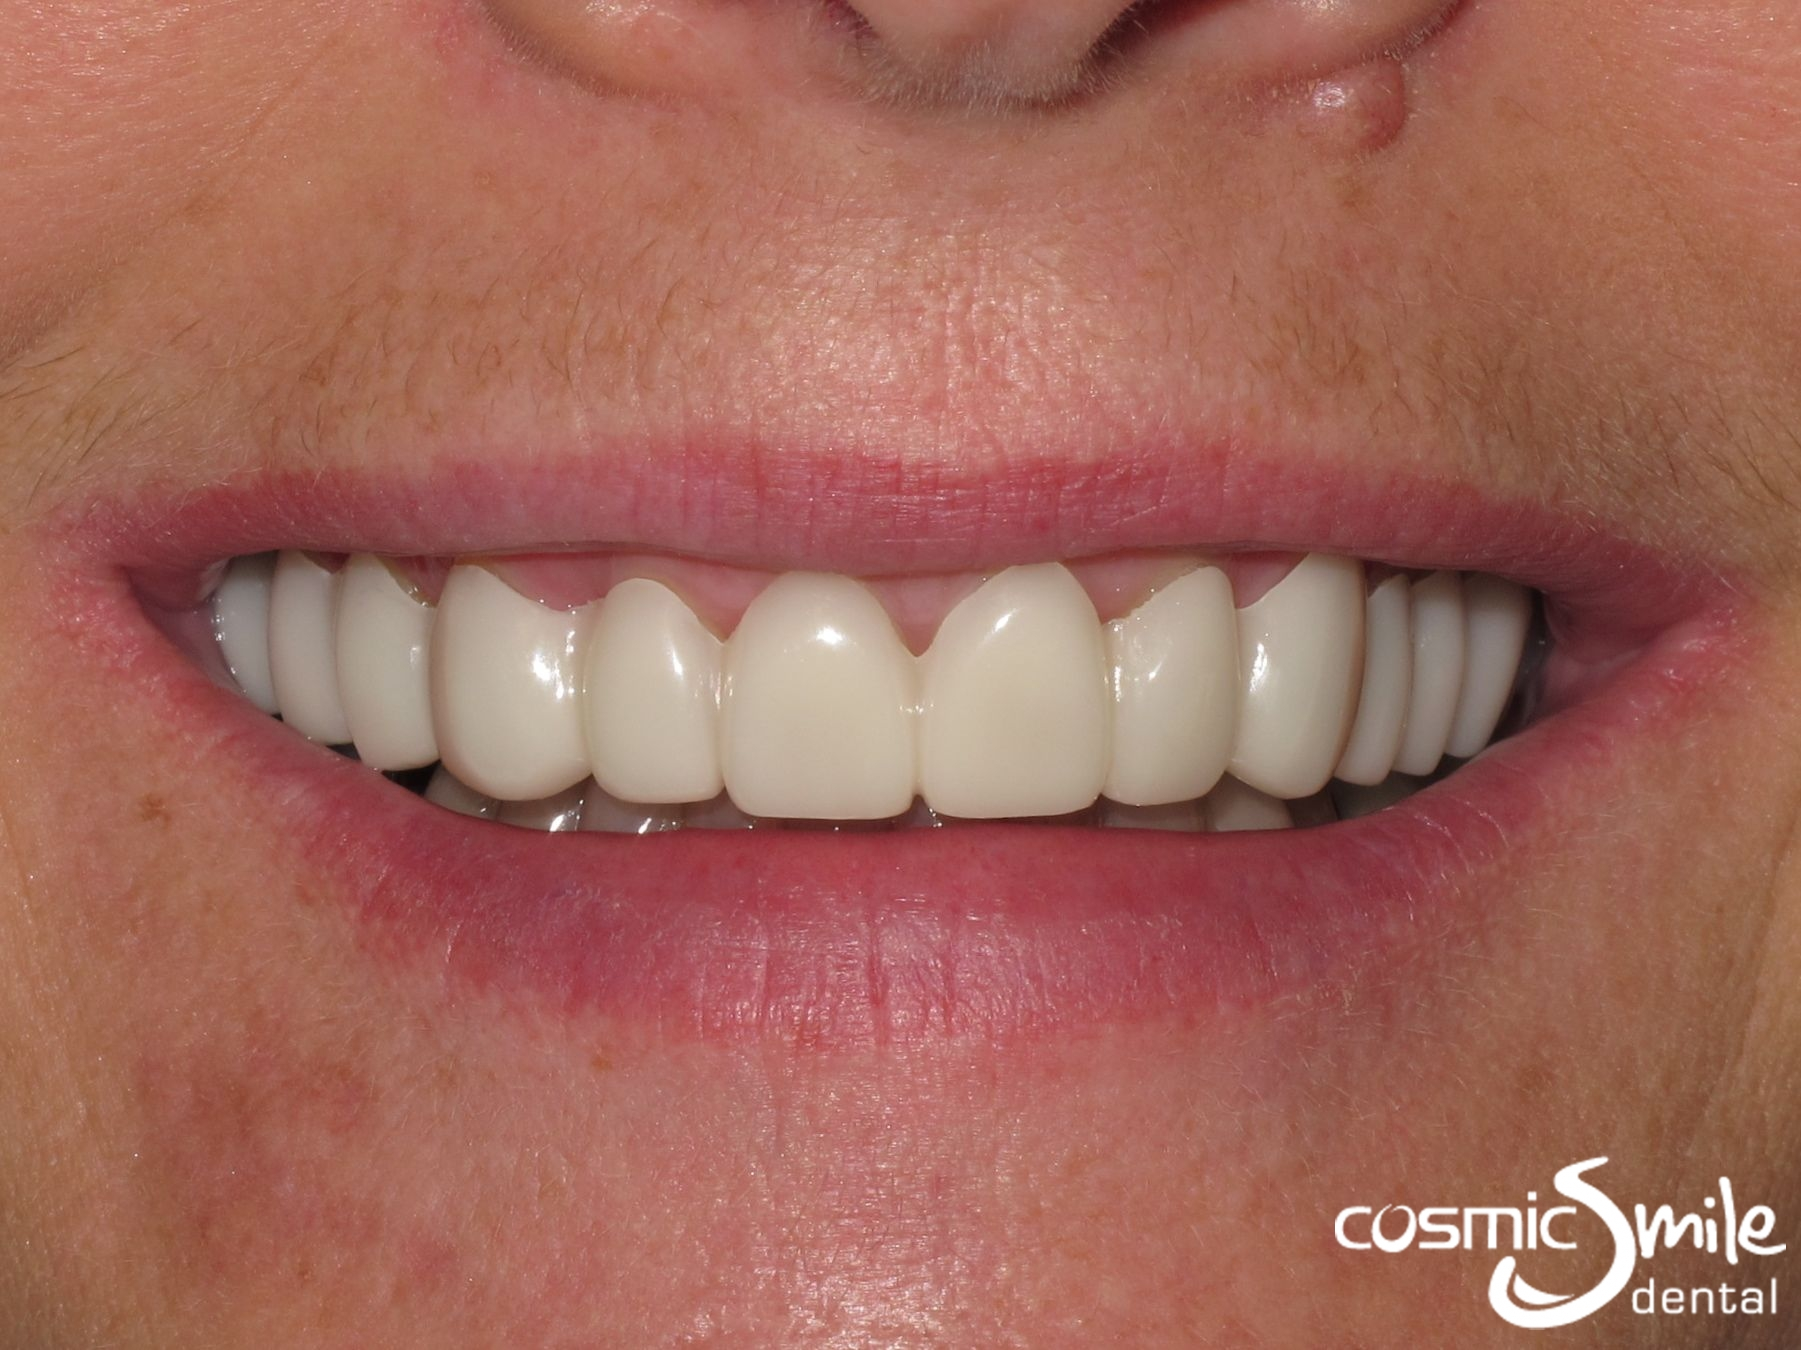 Temporary Veneers Snap on Smile in place